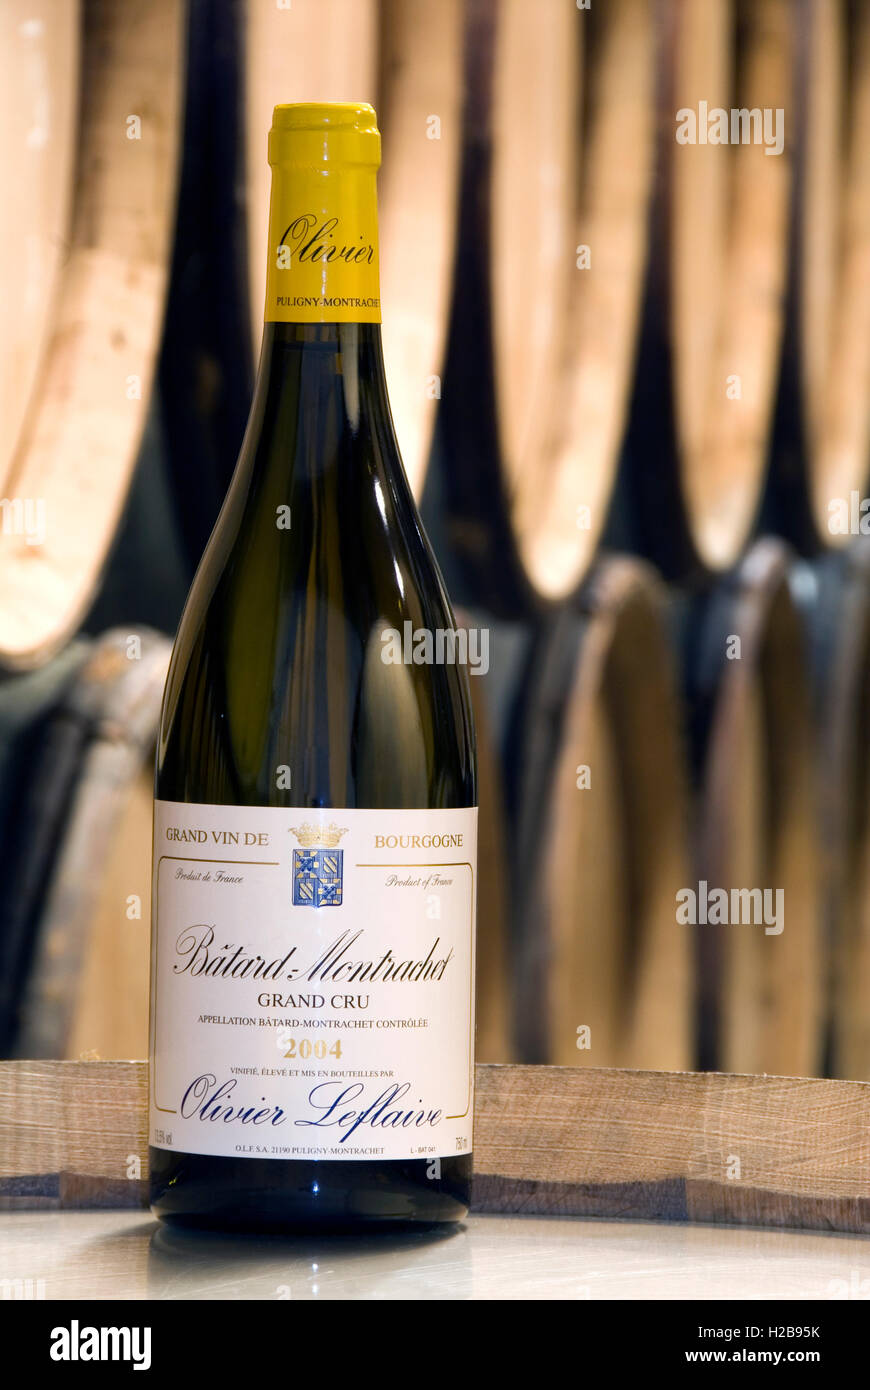 Olivier leflaive stock photos olivier leflaive stock - La table d olivier leflaive puligny montrachet ...